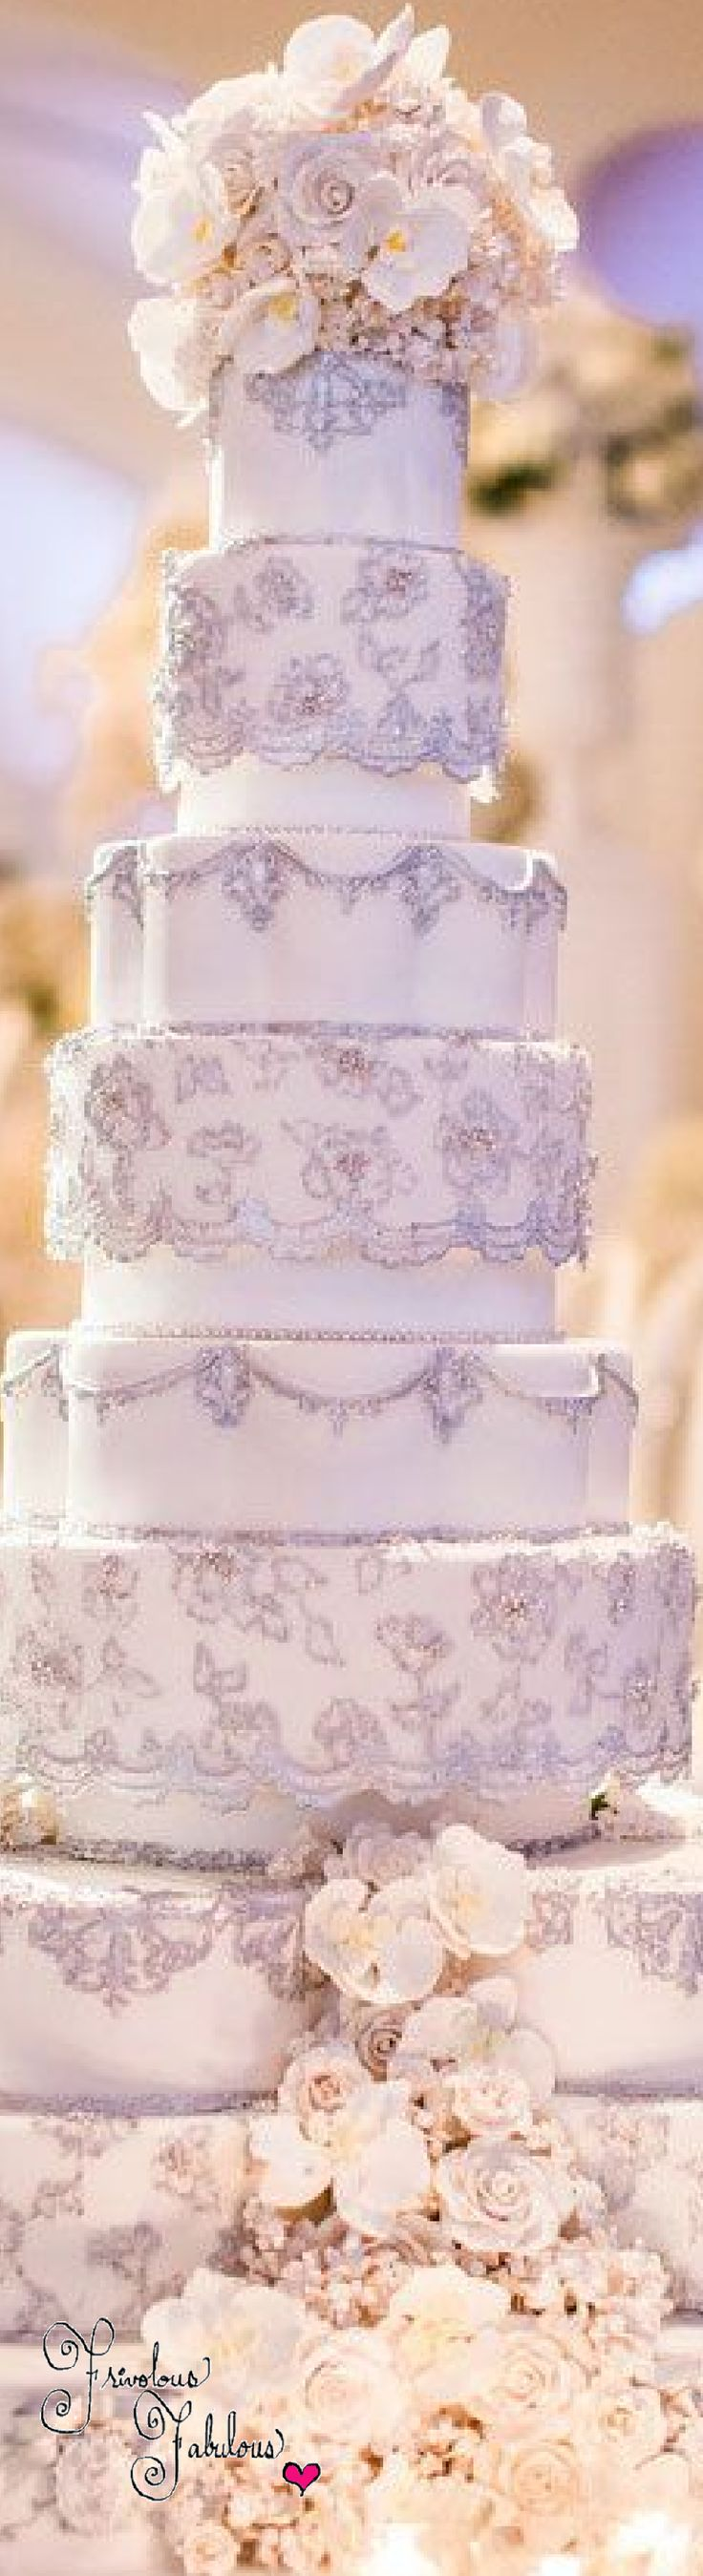 Frivolous Fabulous - Lavender Cake By Wed Luxe